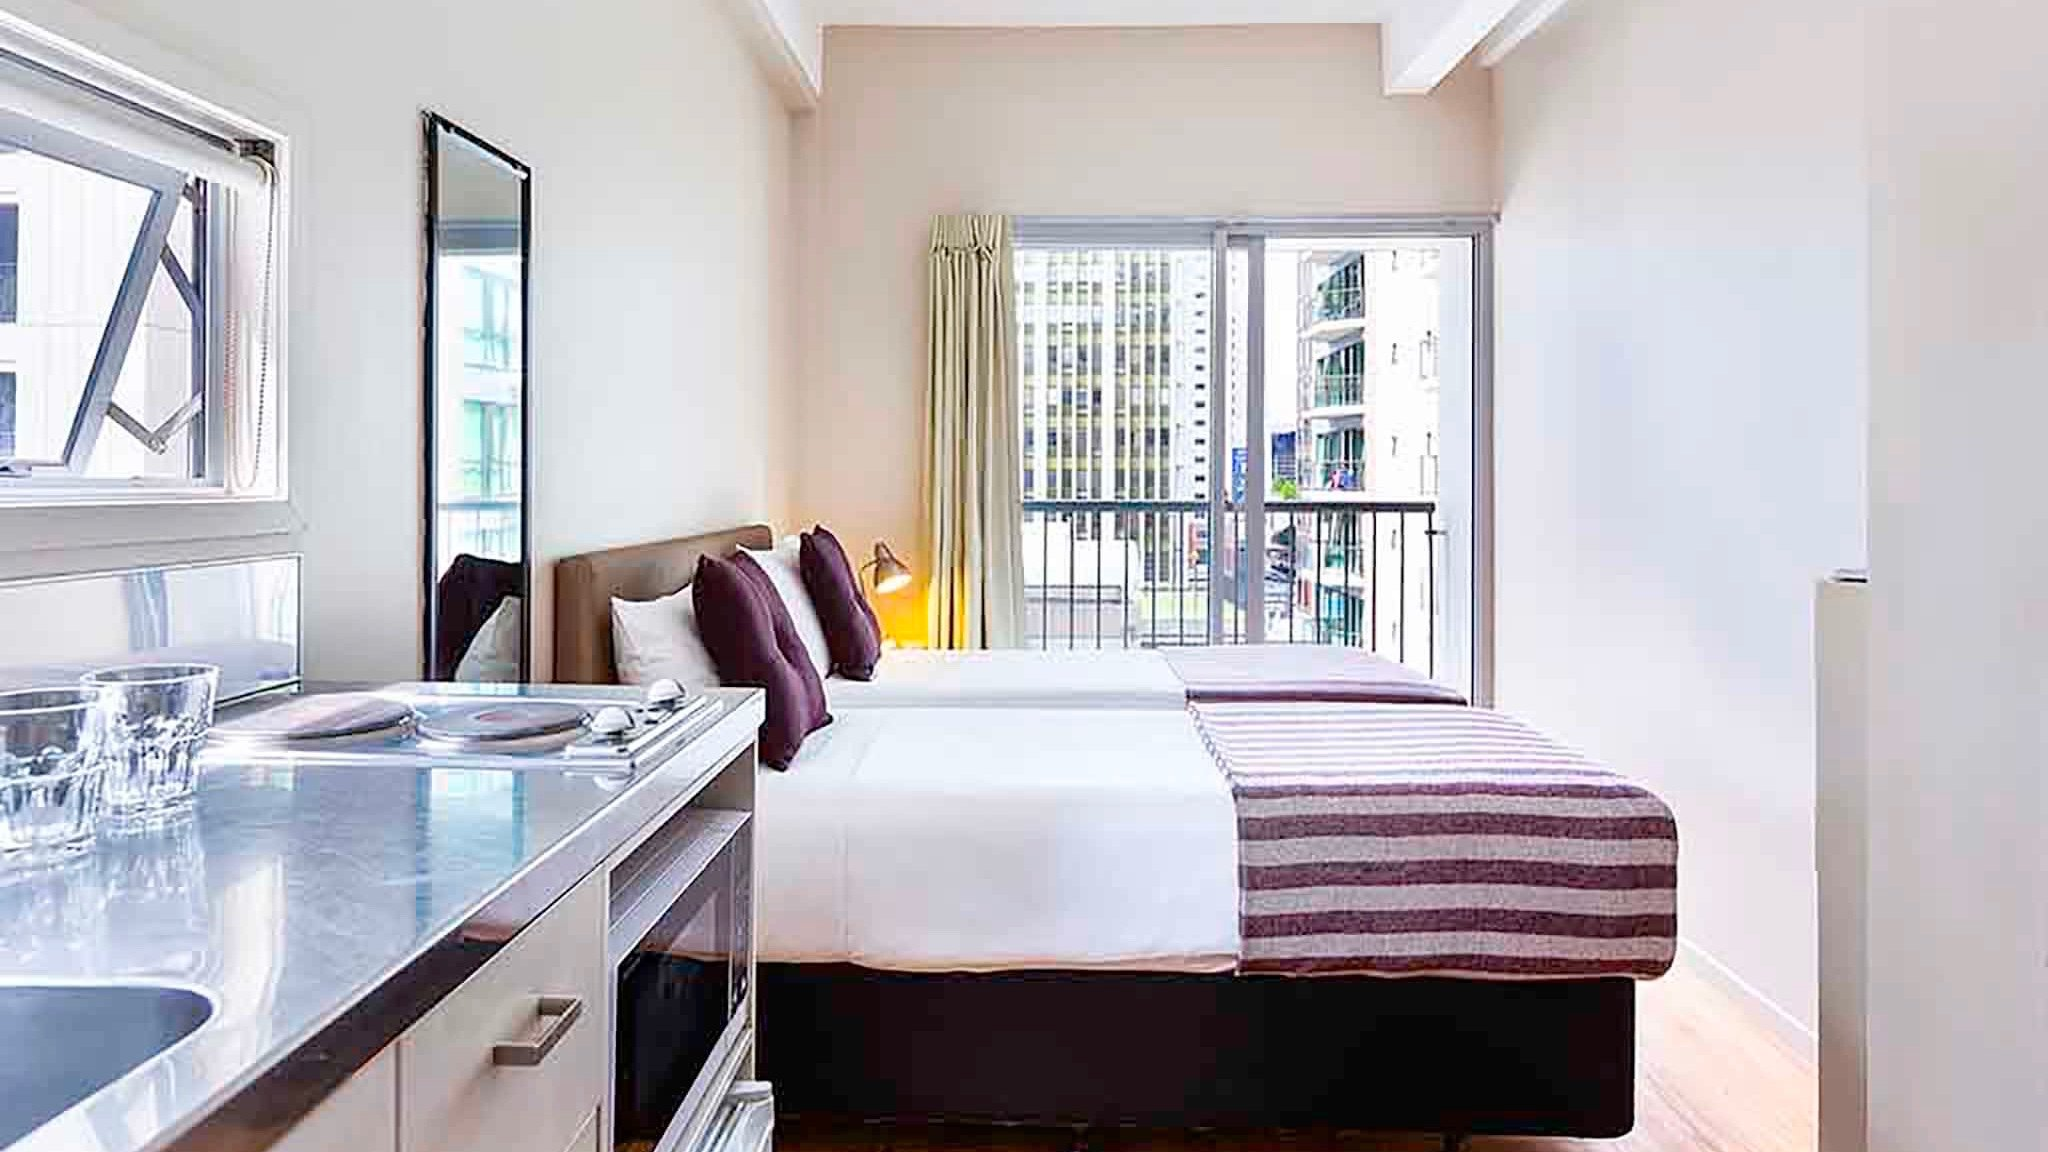 IBIS budget cheap 3 star hotel room in Auckland CBD